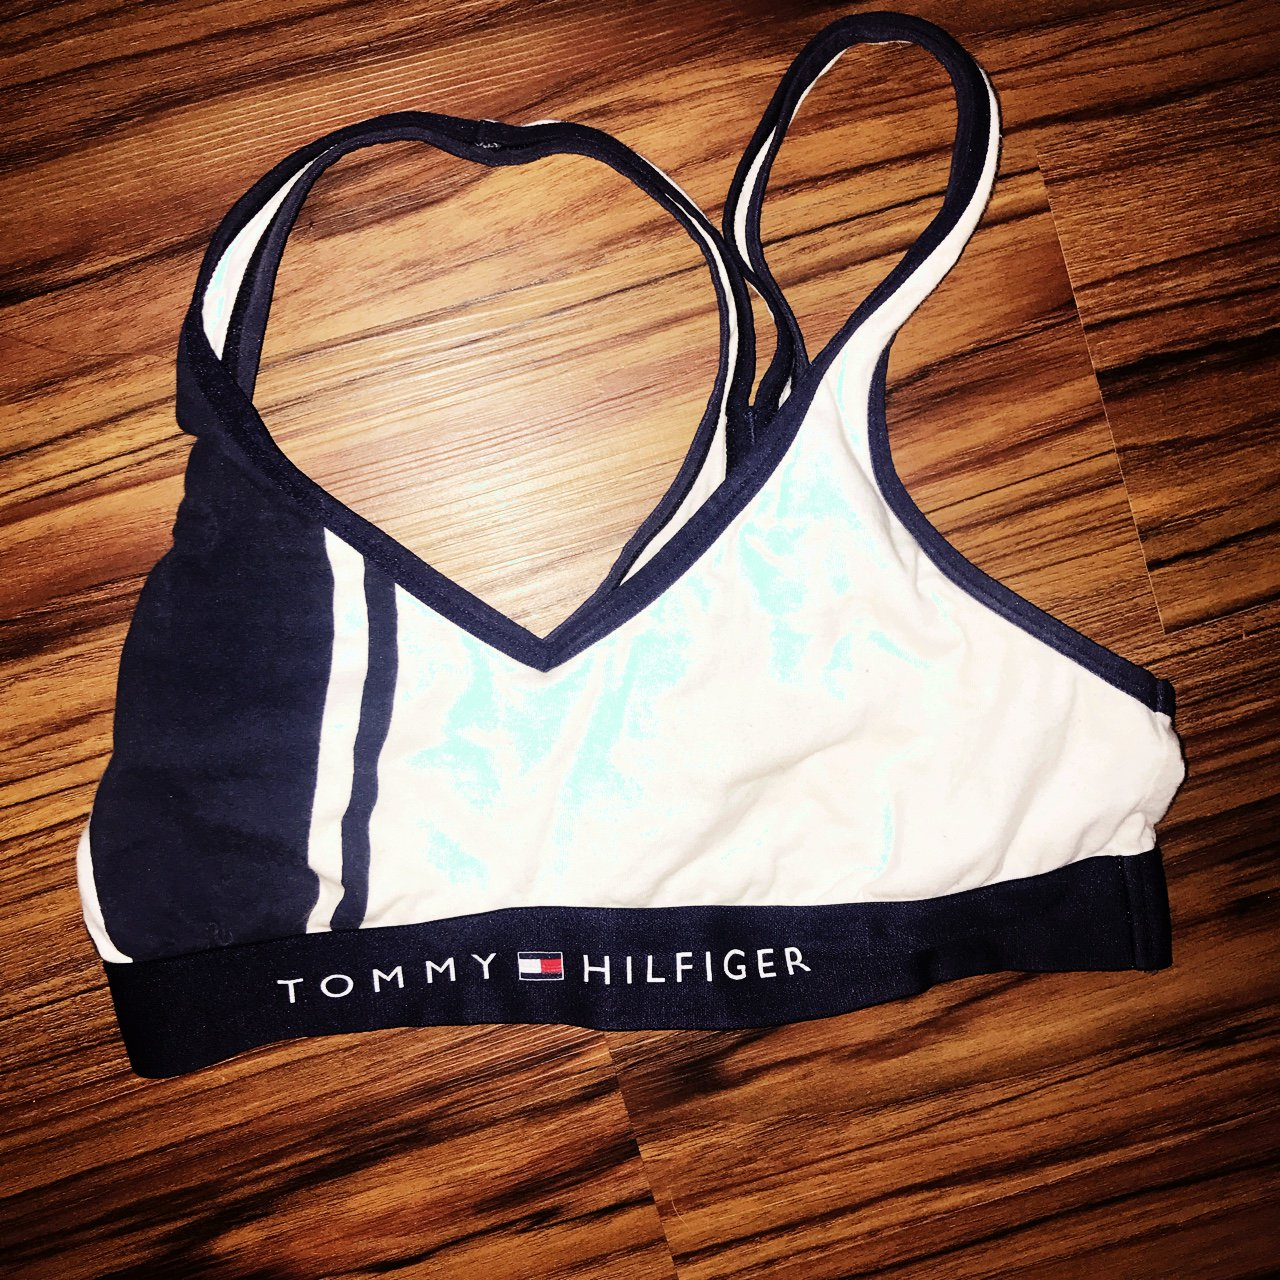 04db23a296 Authentic Tommy Hilfiger bra! Can be worn underneath or just - Depop